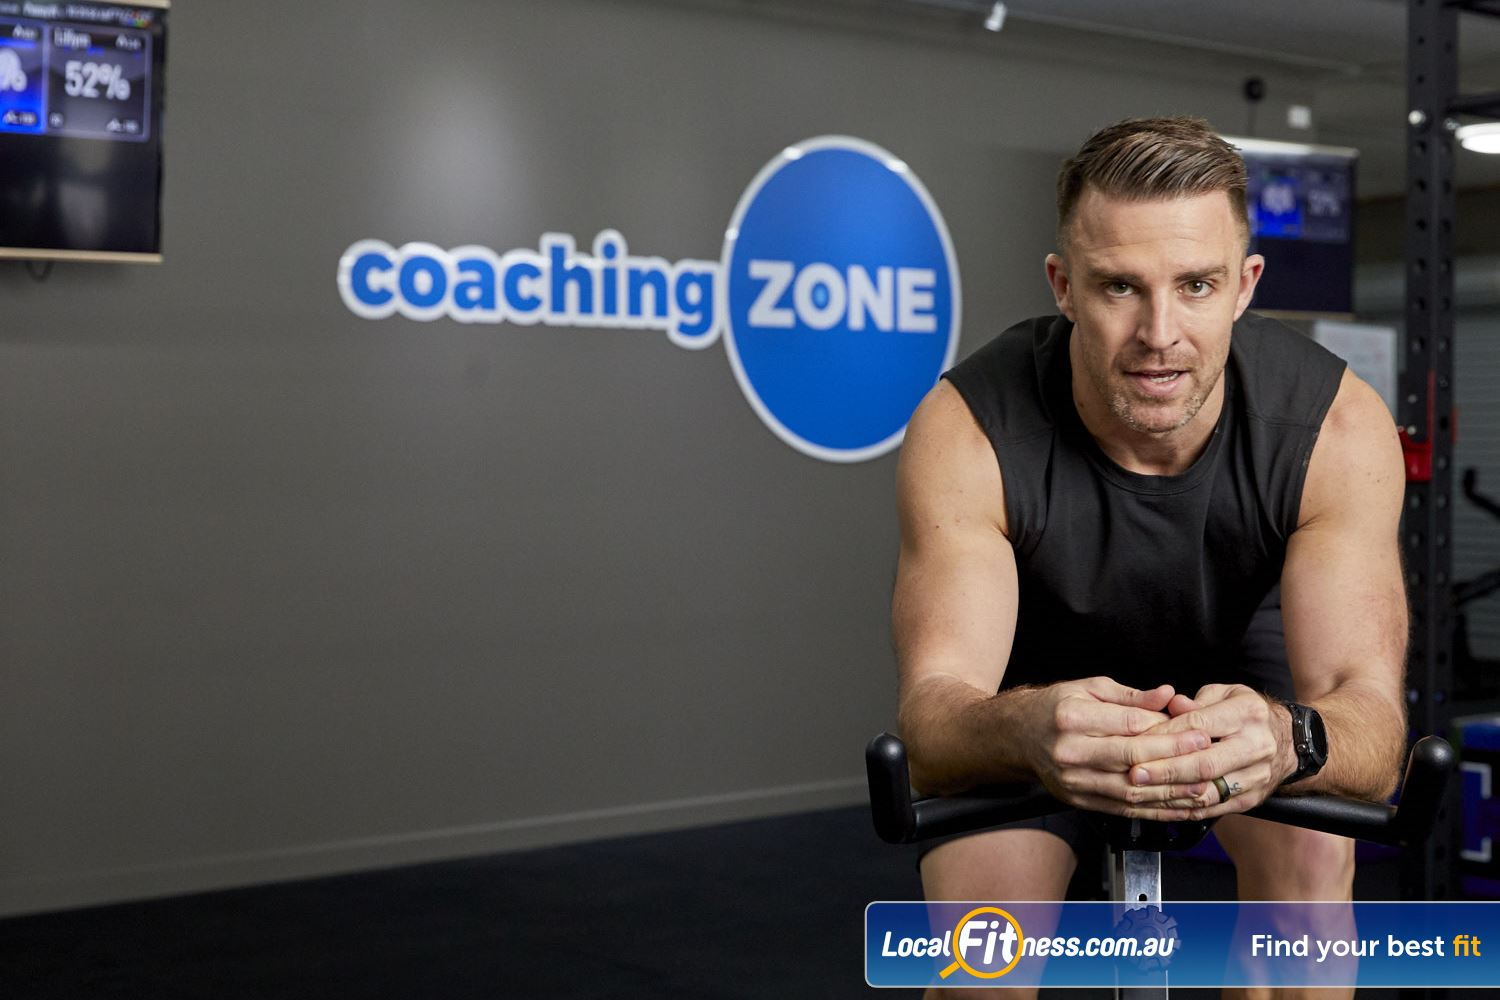 Coaching Zone Ferntree Gully Coaching Zone is the hottest group training workout in Ferntree Gully.